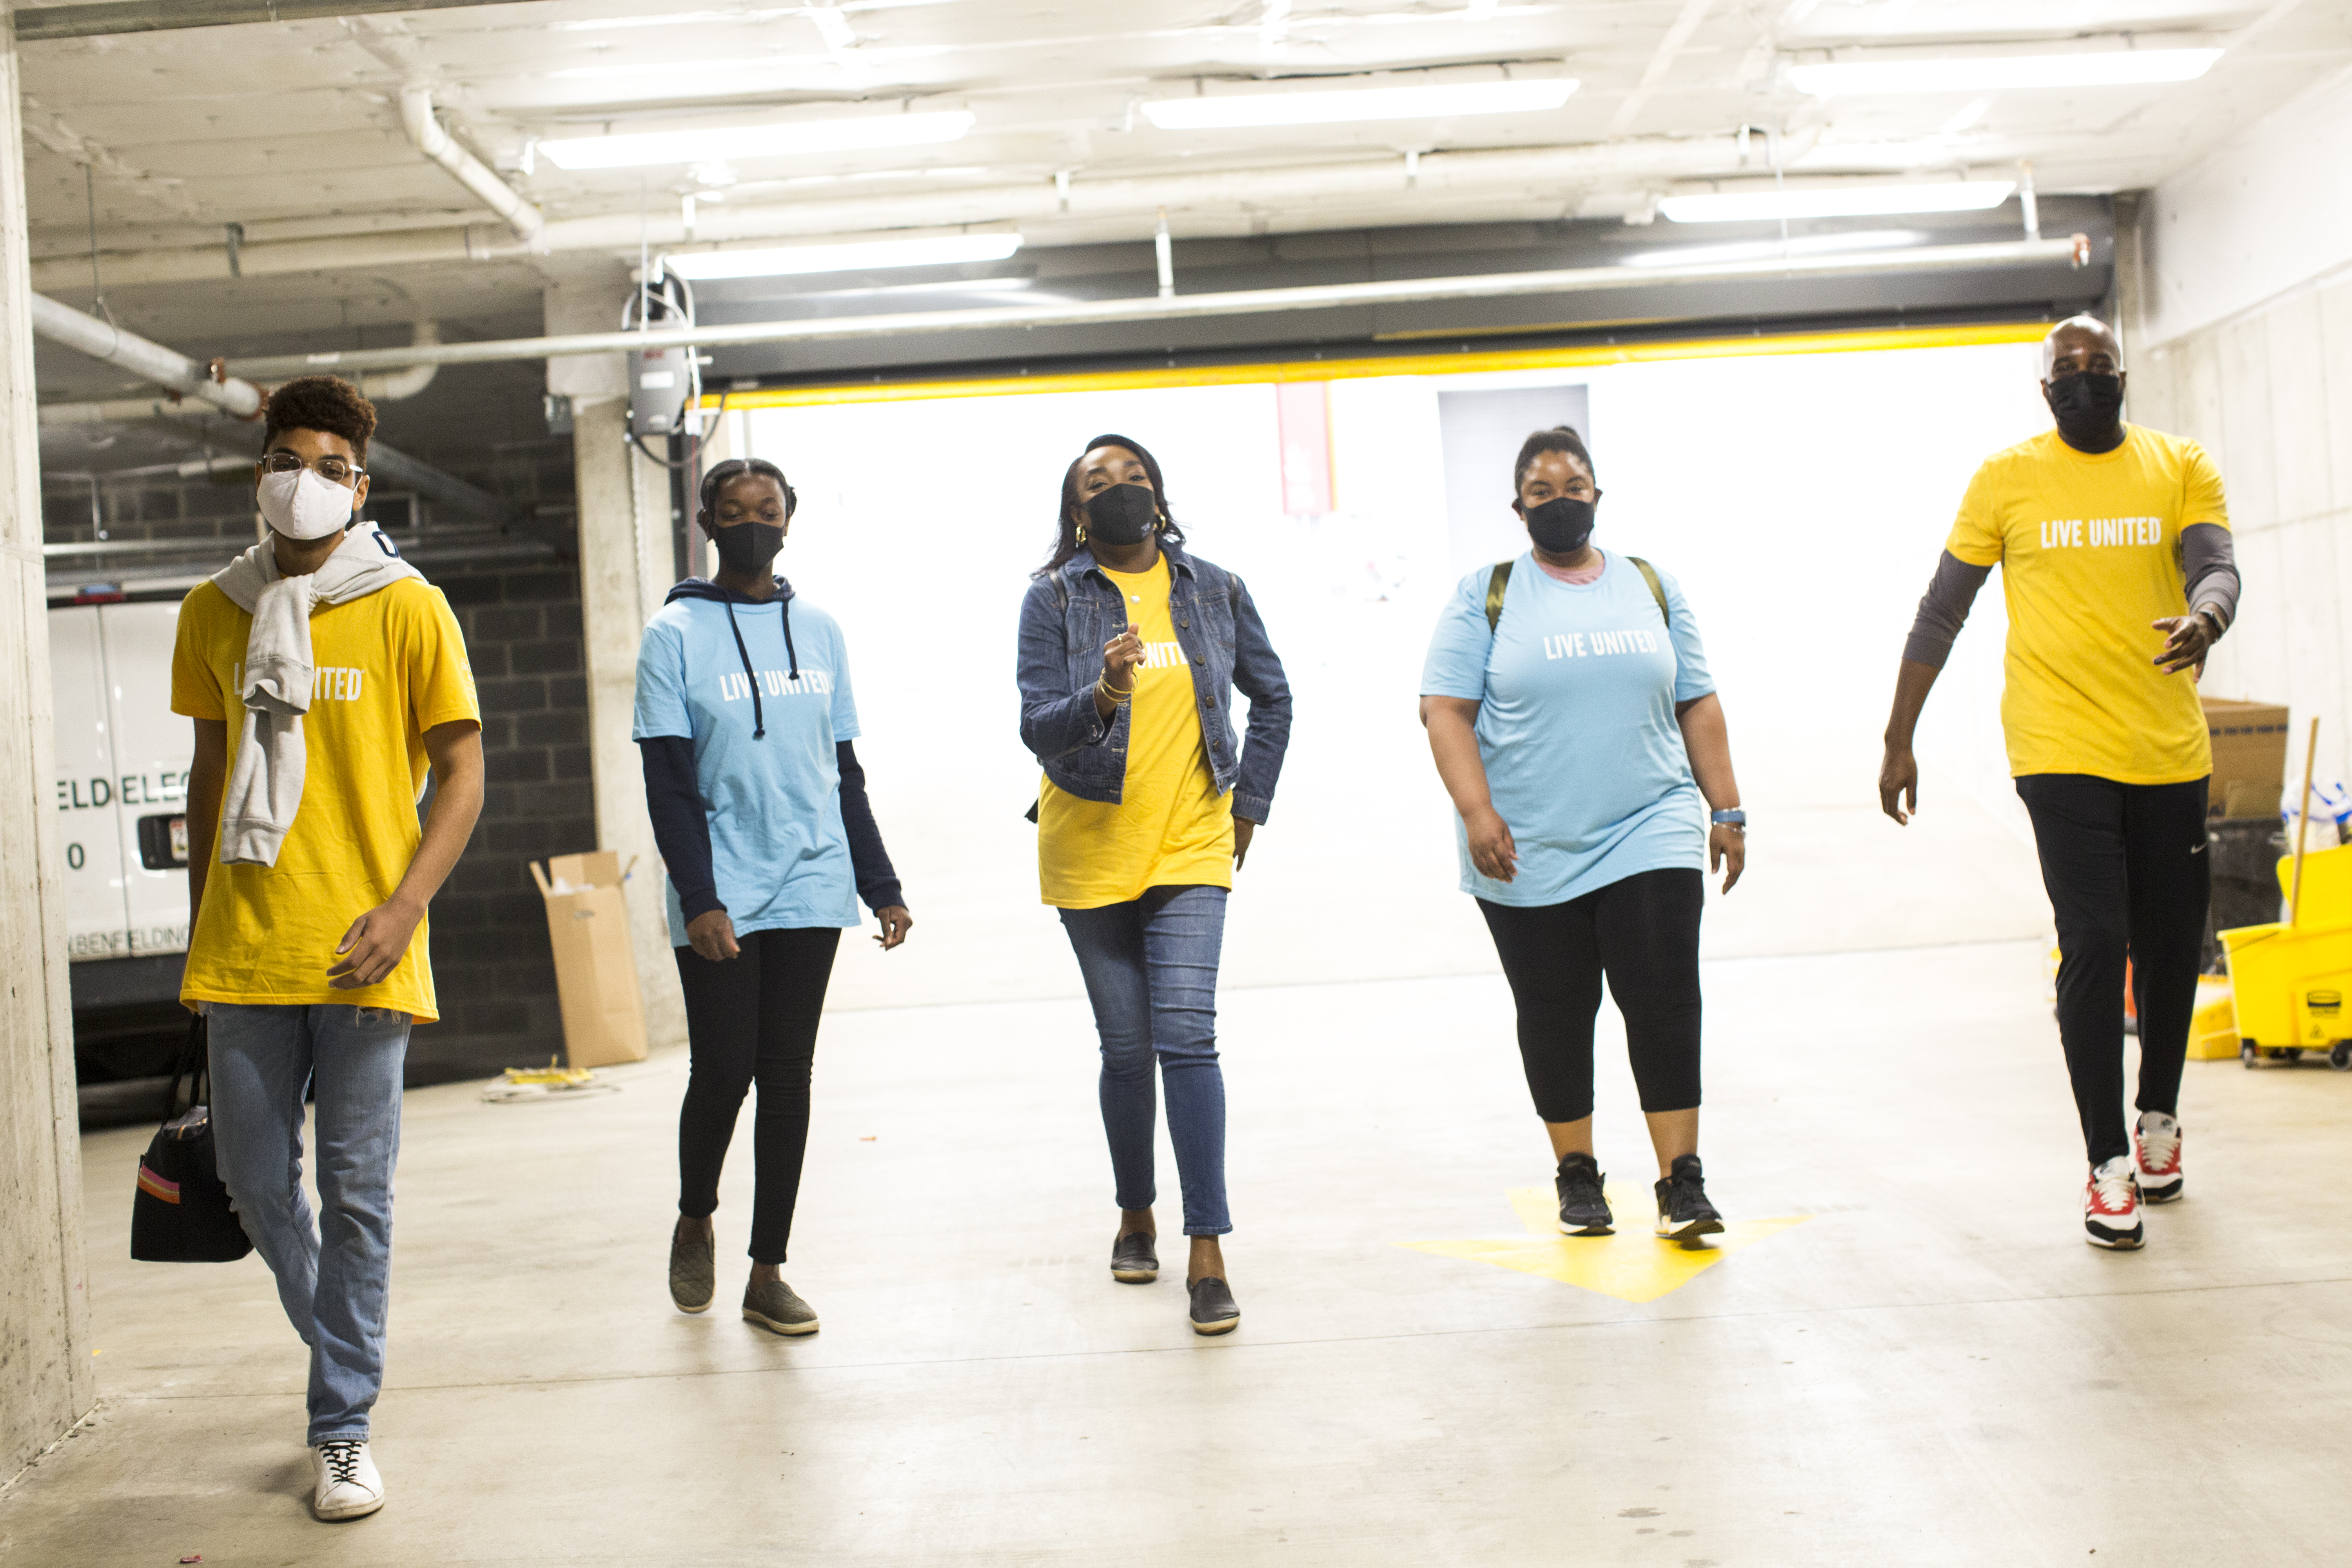 Group of Leaders United volunteers at Way Home event